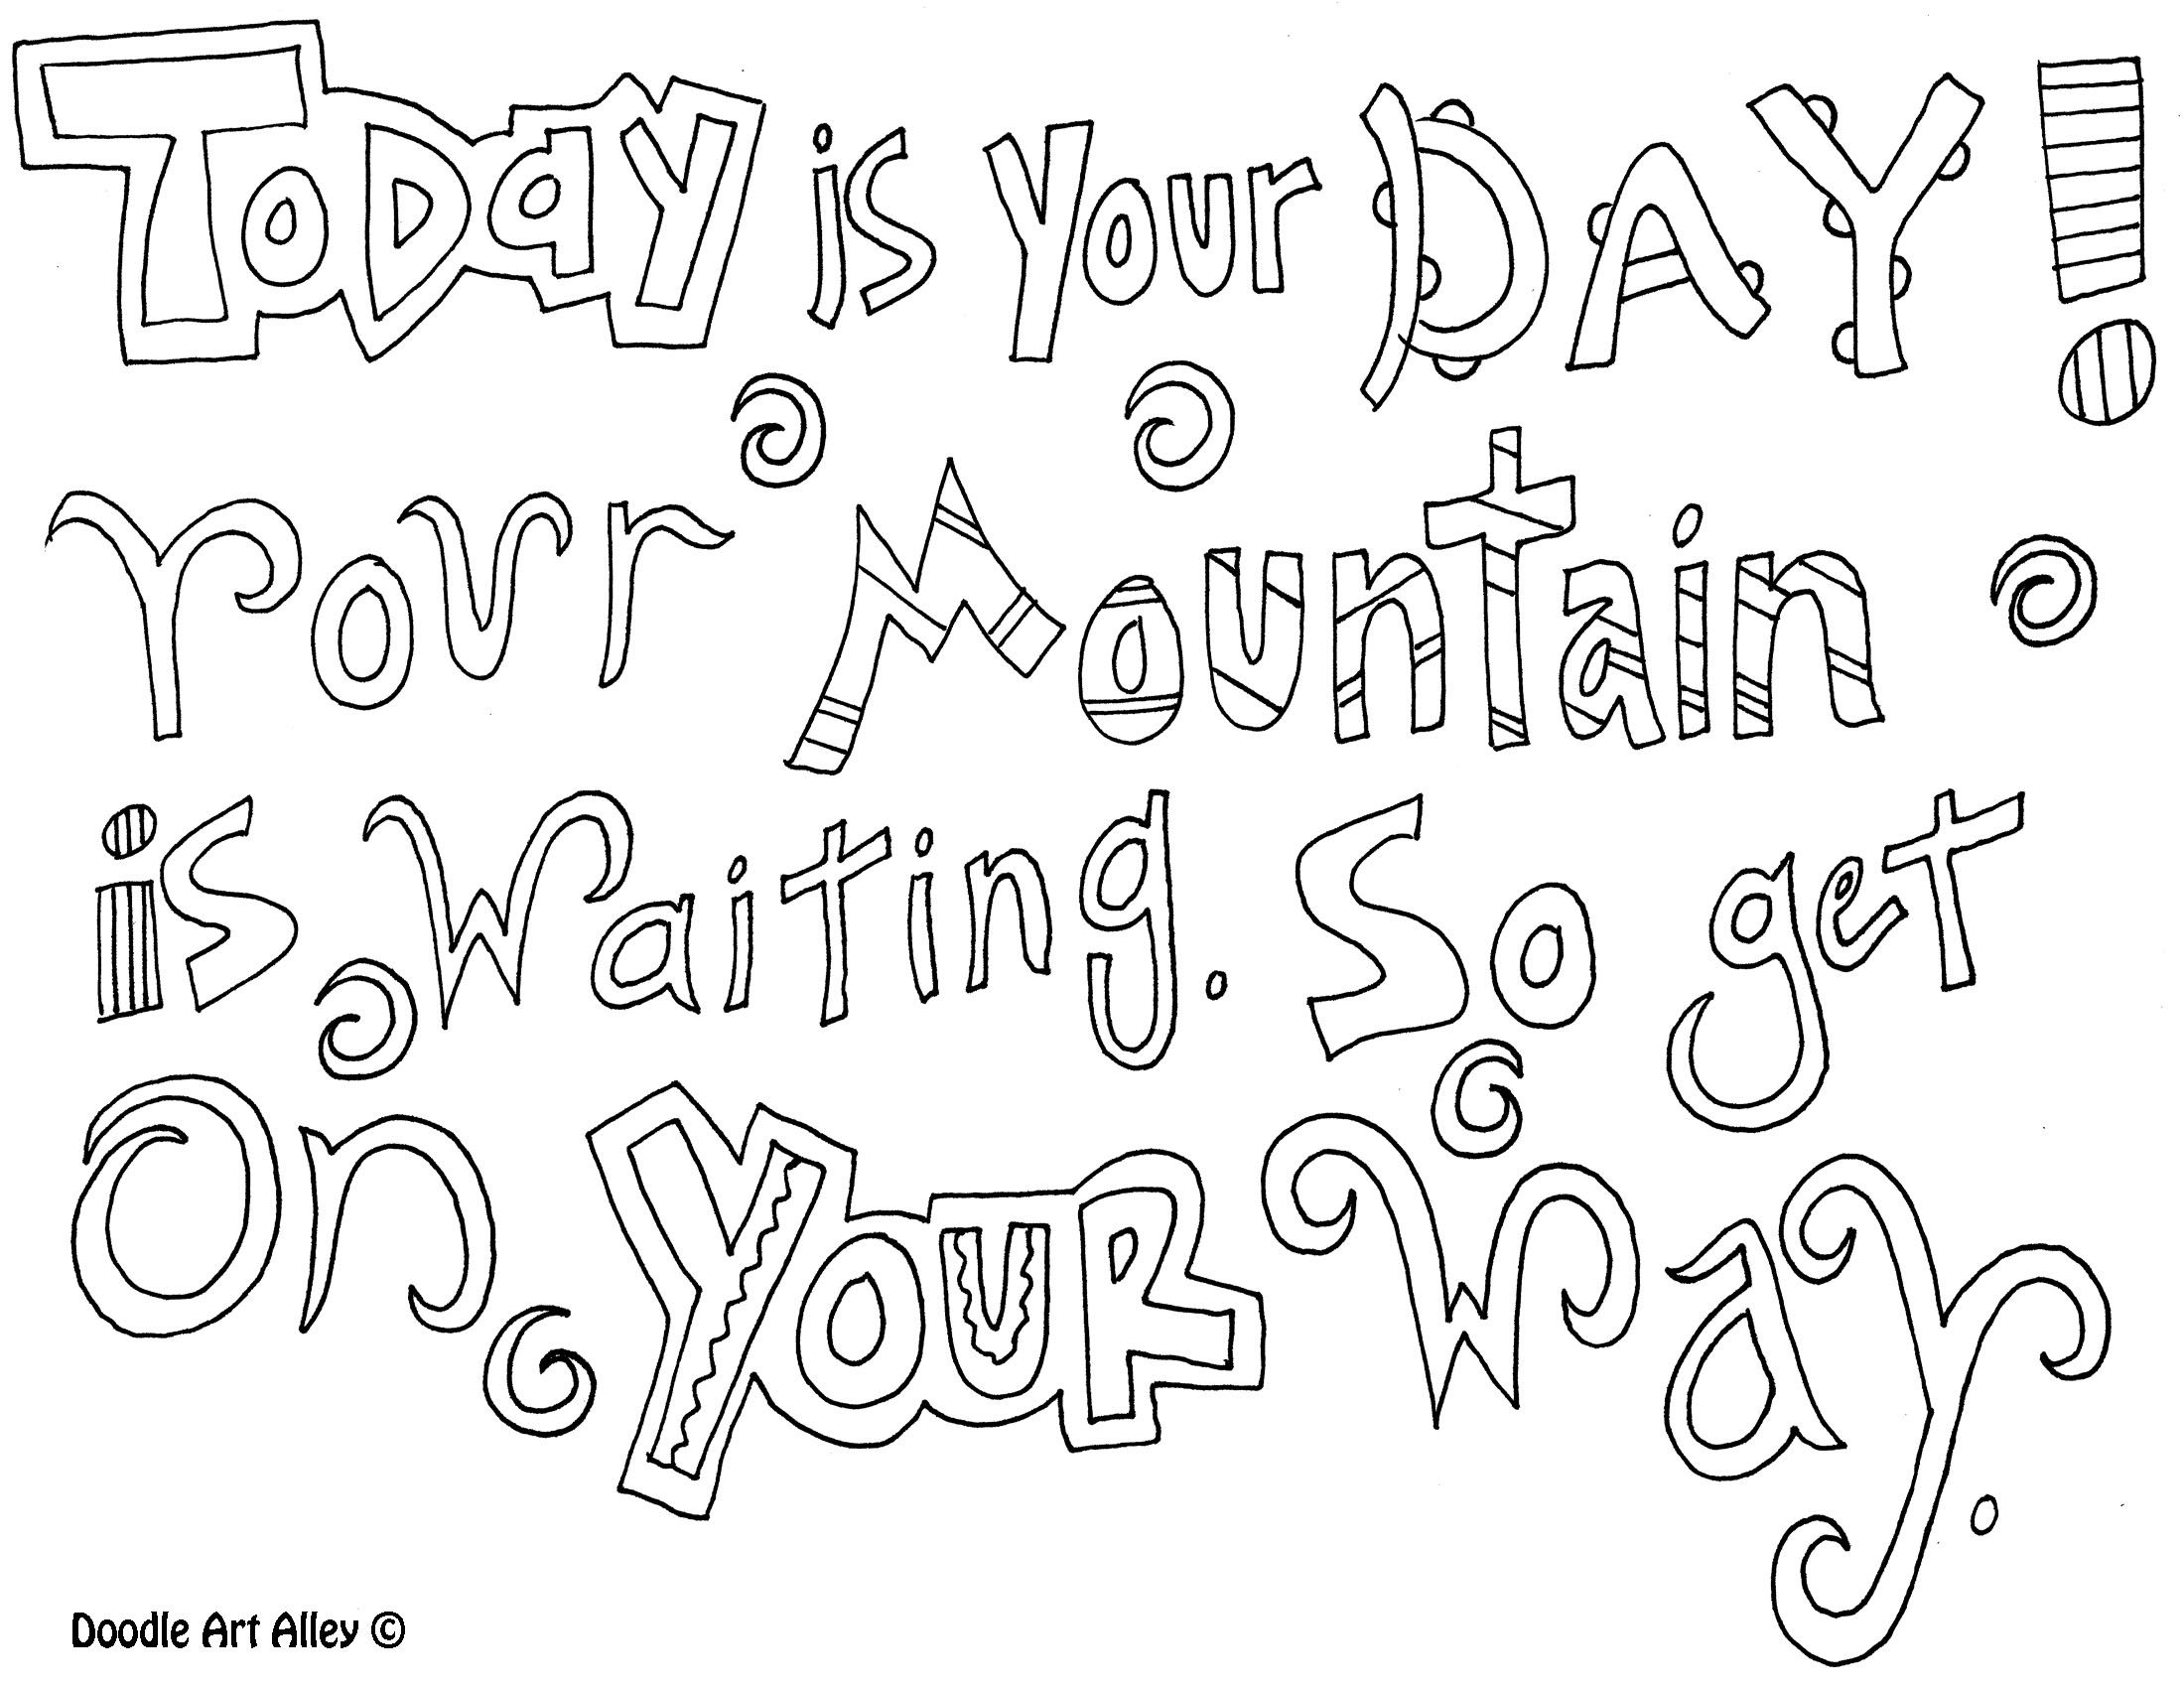 Dr. Seuss Quotes Coloring Pages